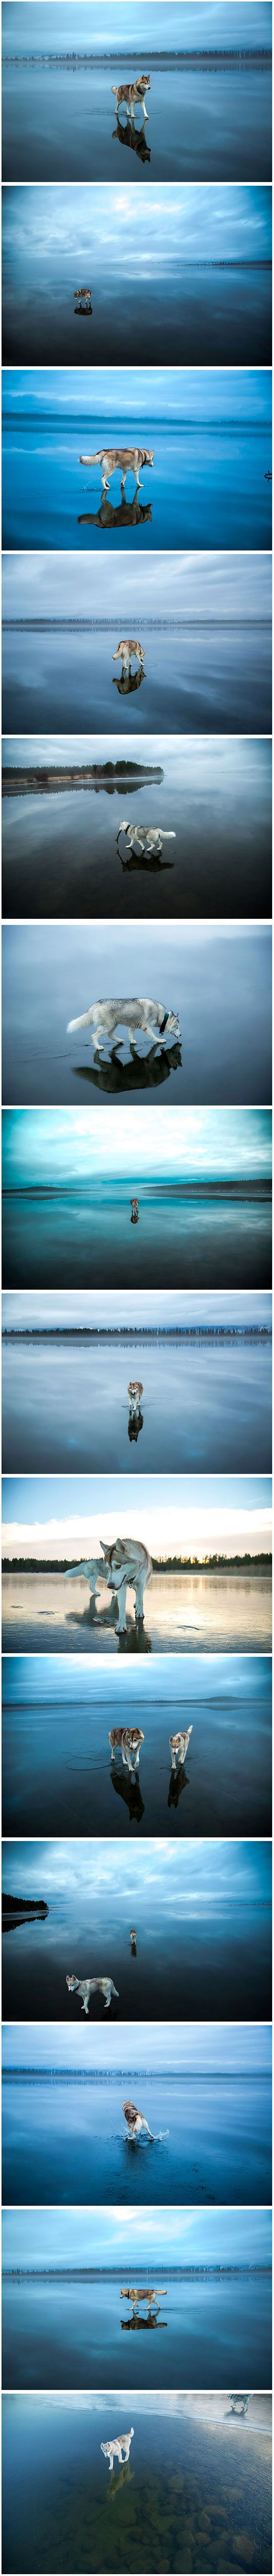 A photographer in Russia who goes by Fox Grom has captured some stunning images…